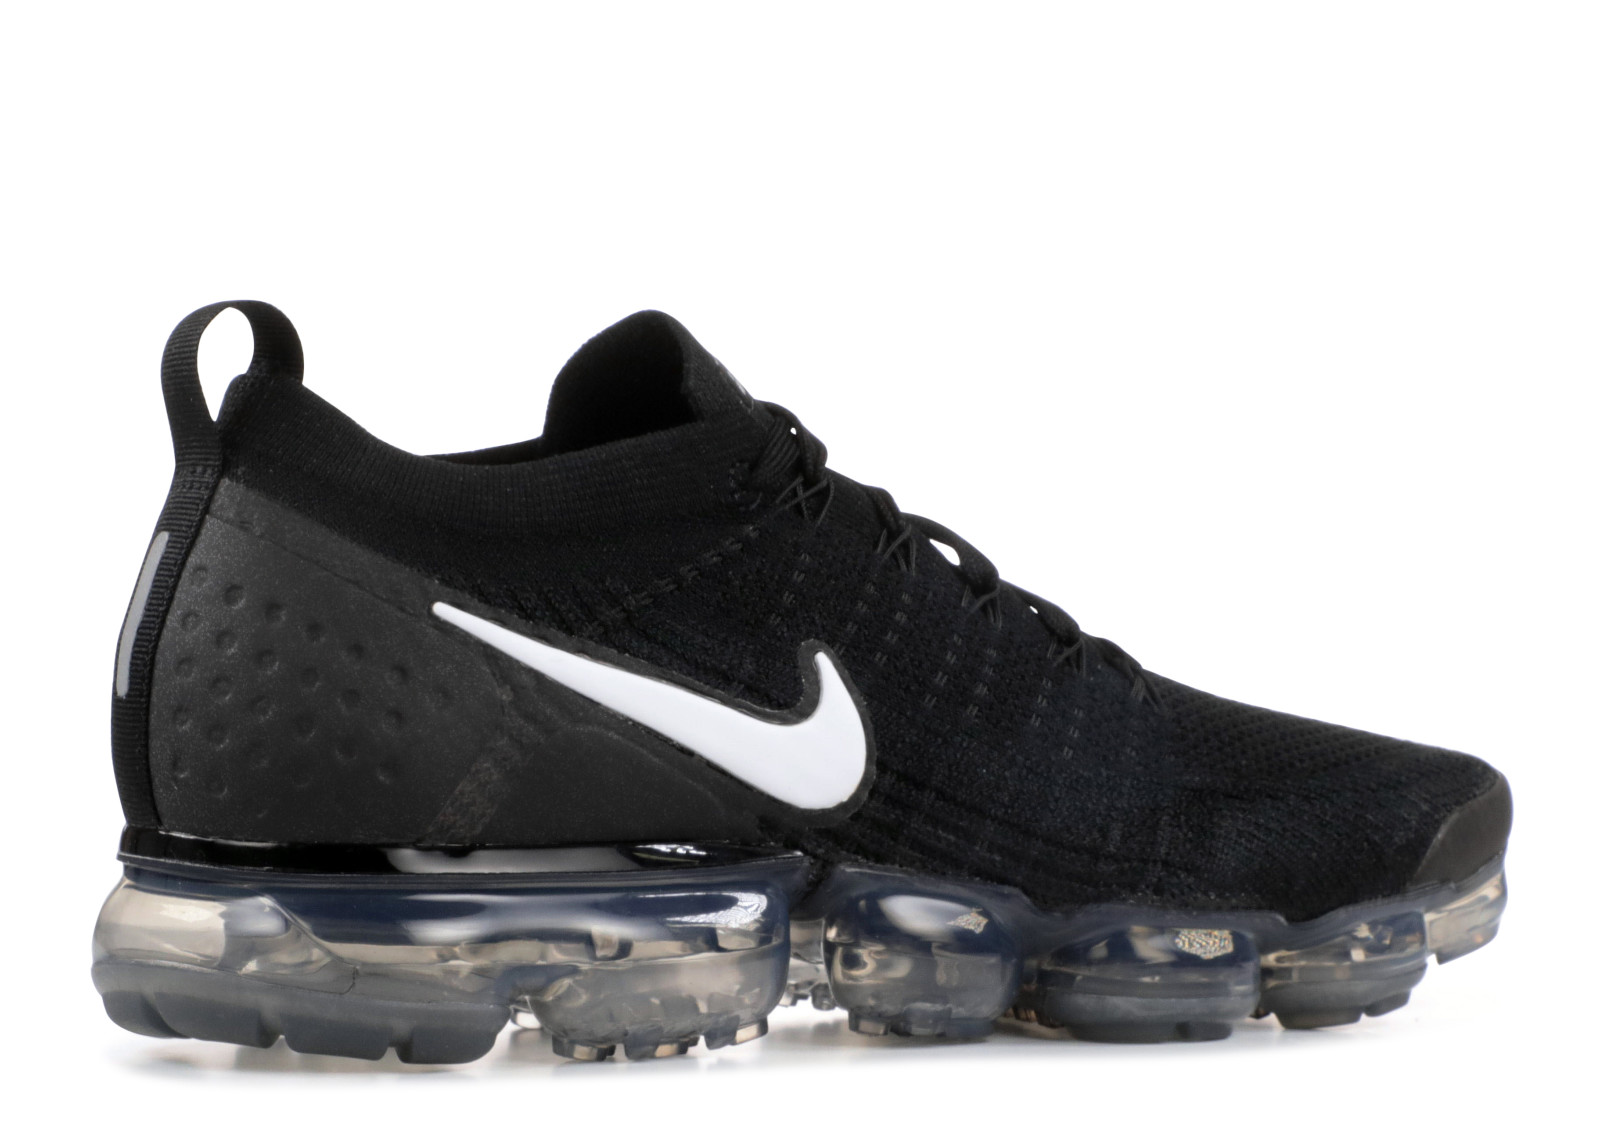 promo code 3ae2e 97838 Nike Air Vapormax Flyknit 2 Black-White-Dark Grey